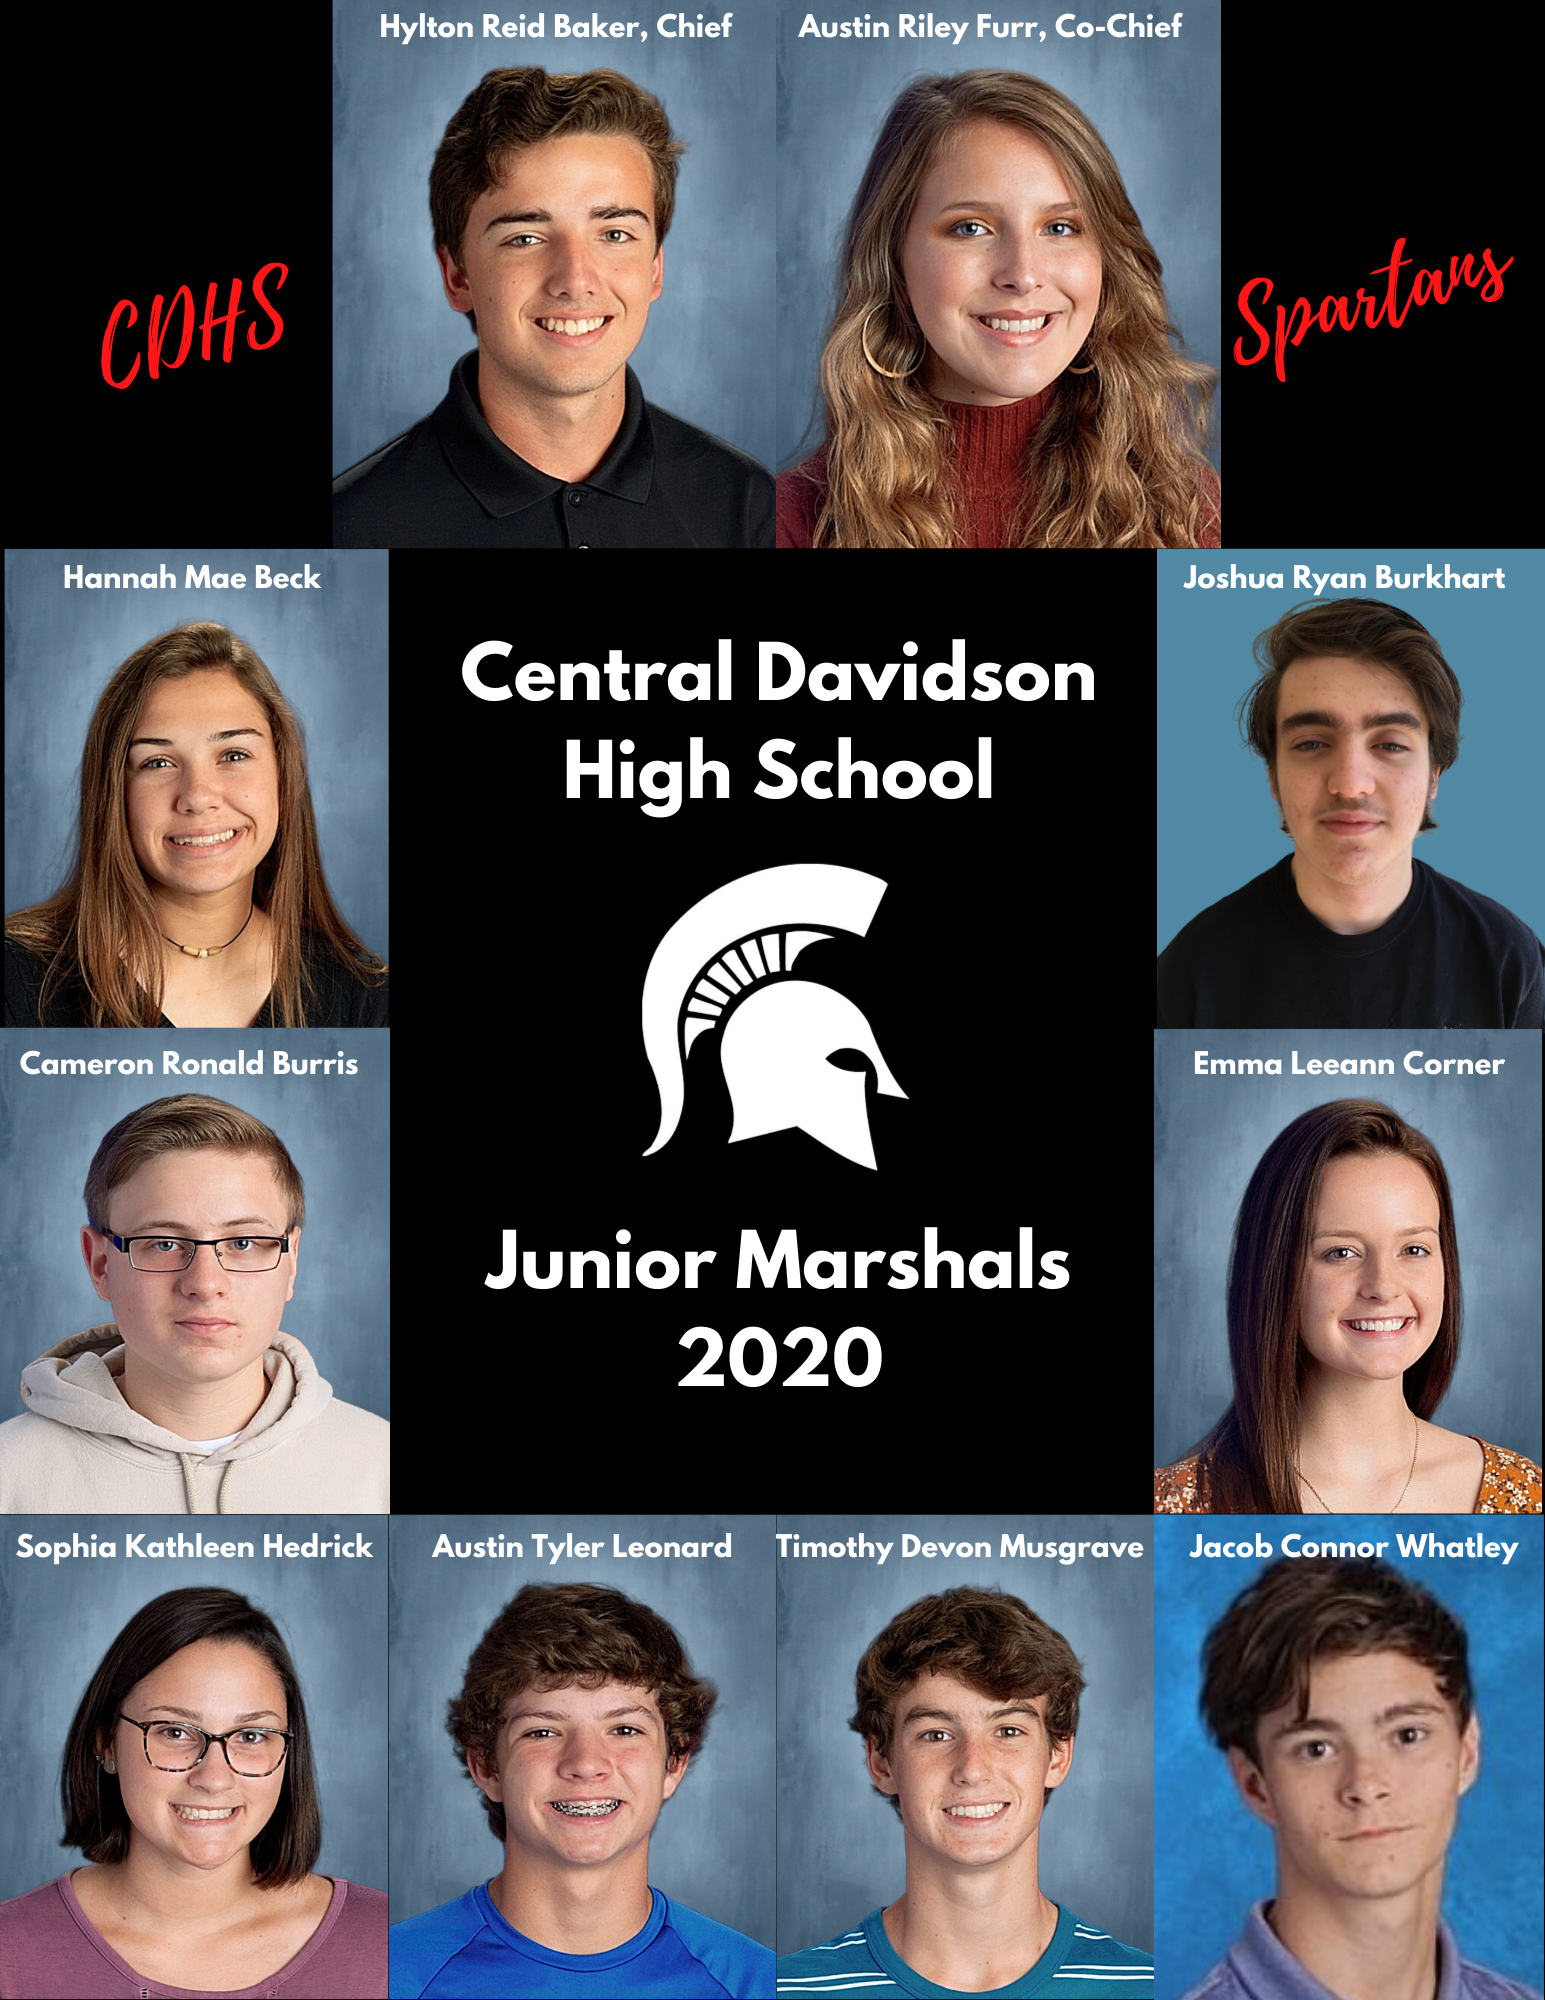 2020 Junior Marshals Group Picture